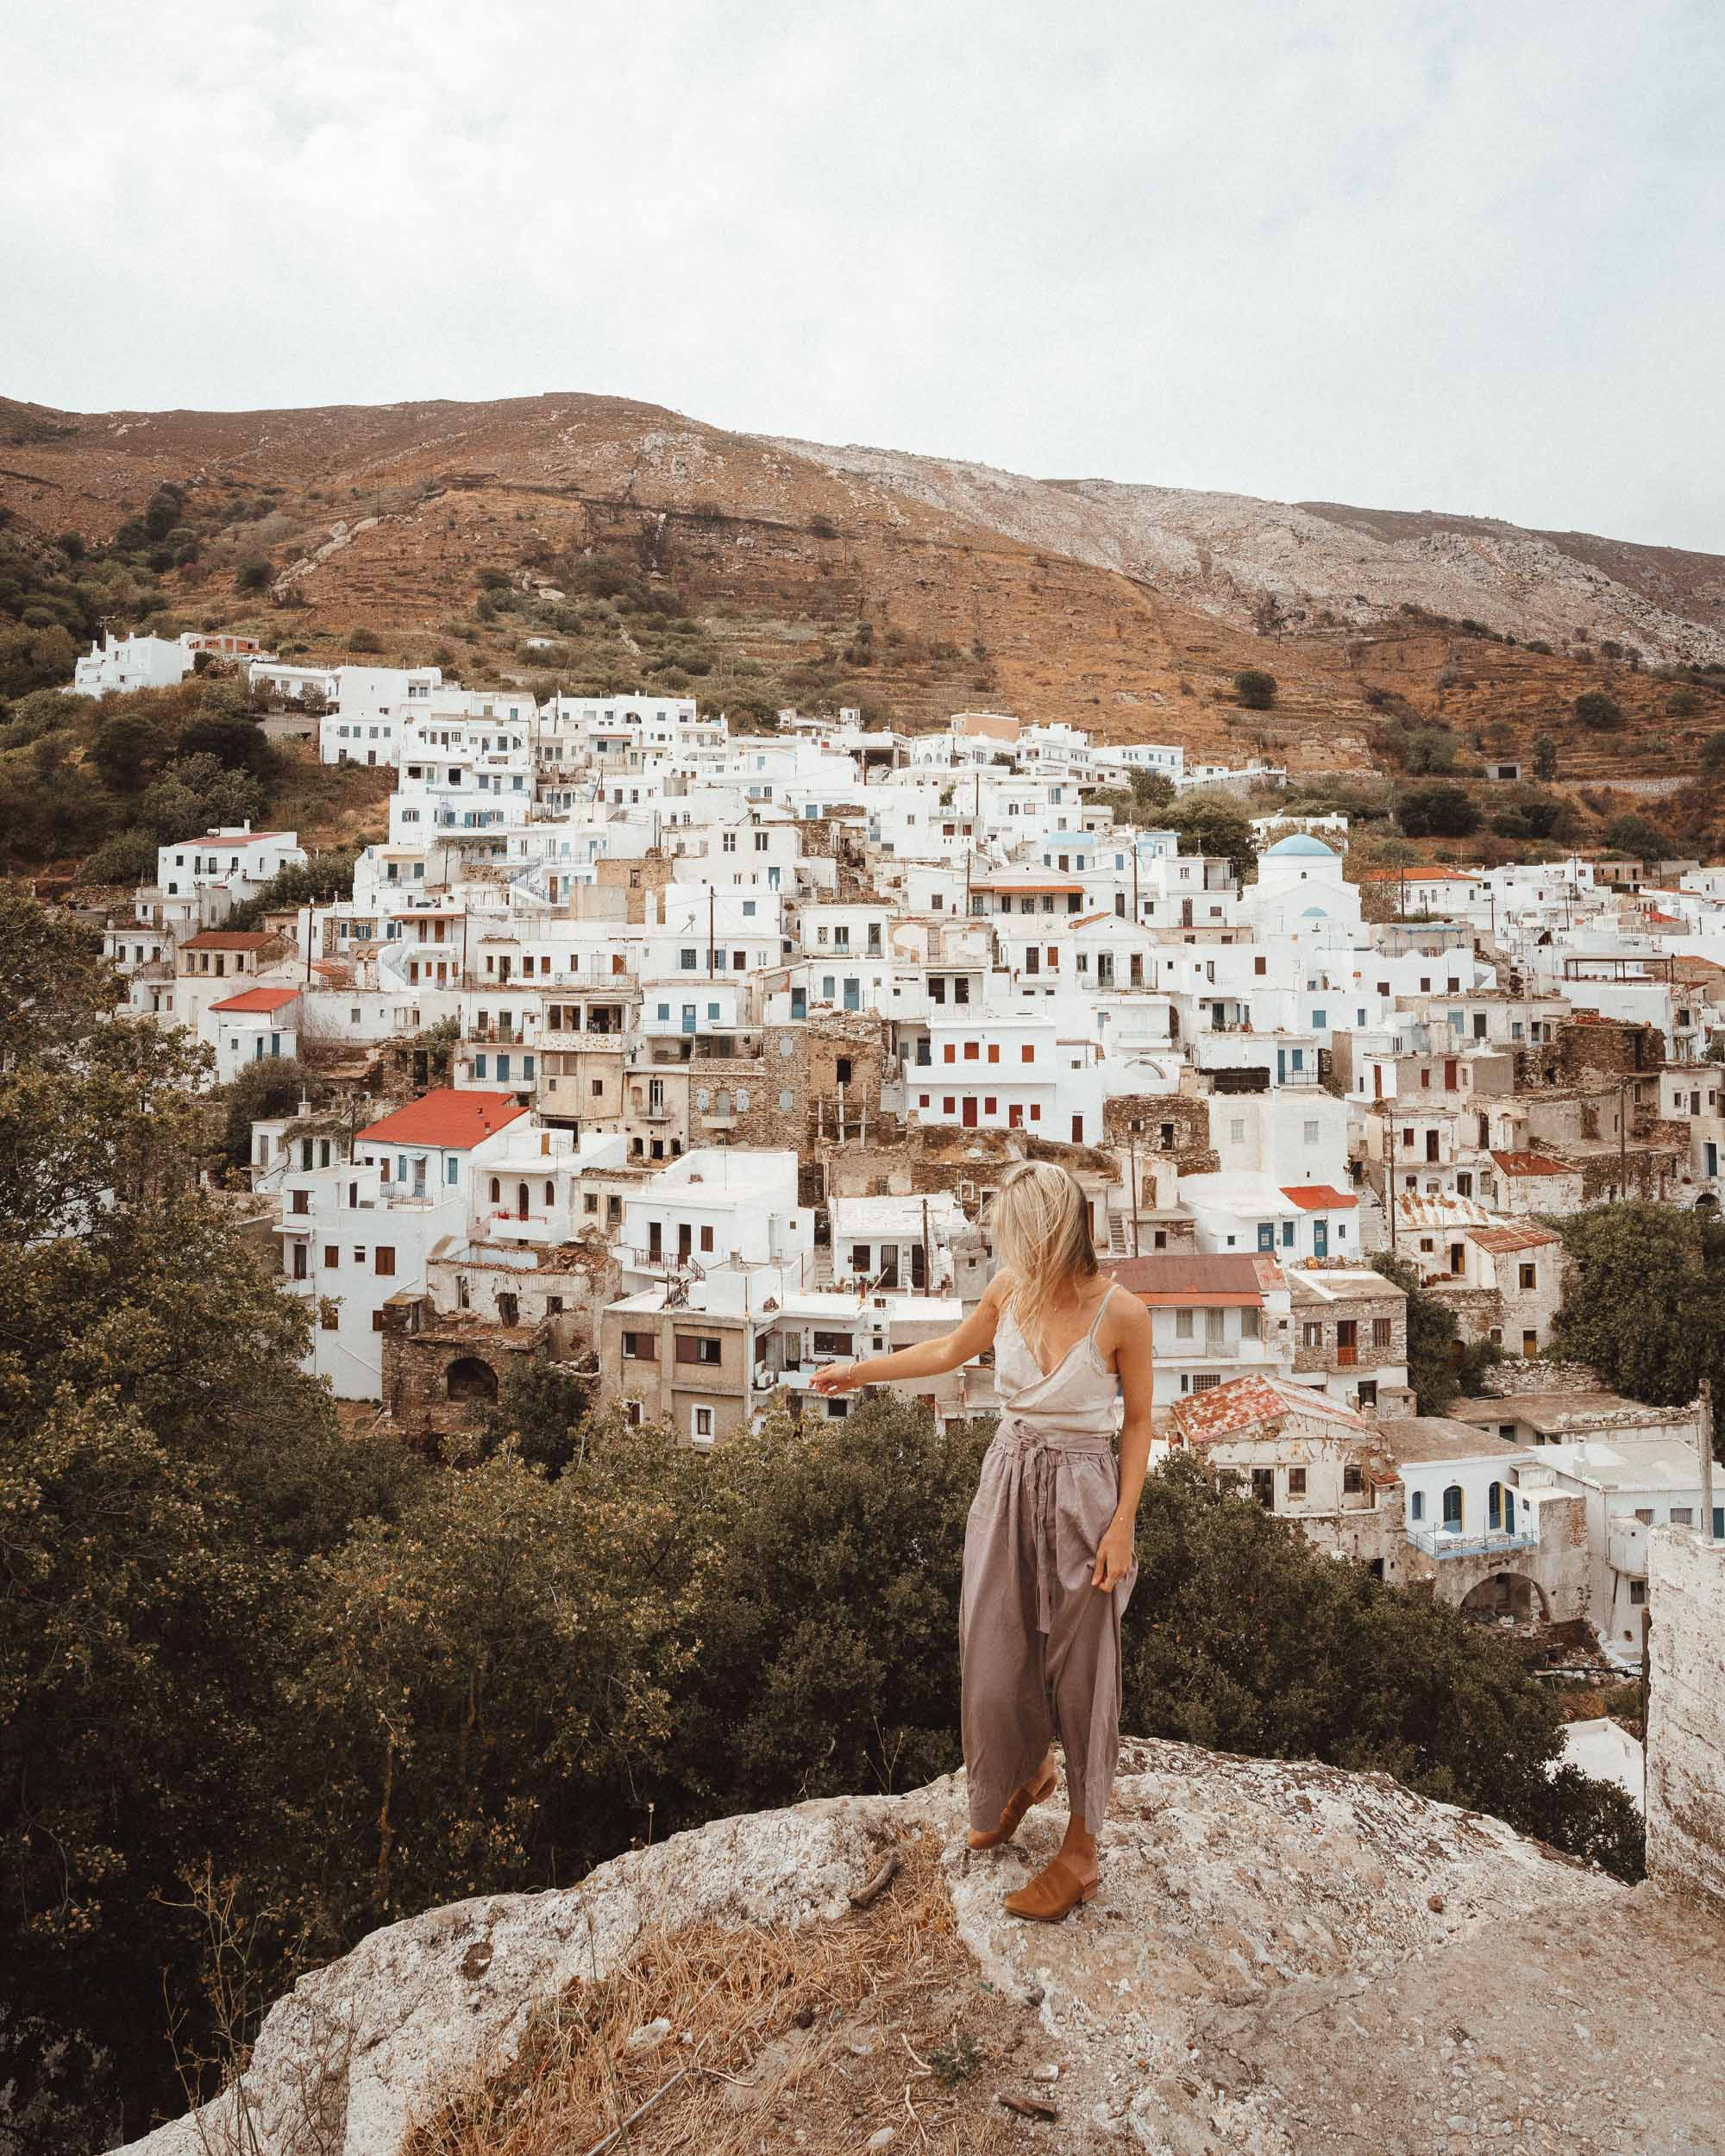 Koronos mountain village in Naxos, Greek Islands via @finduslost